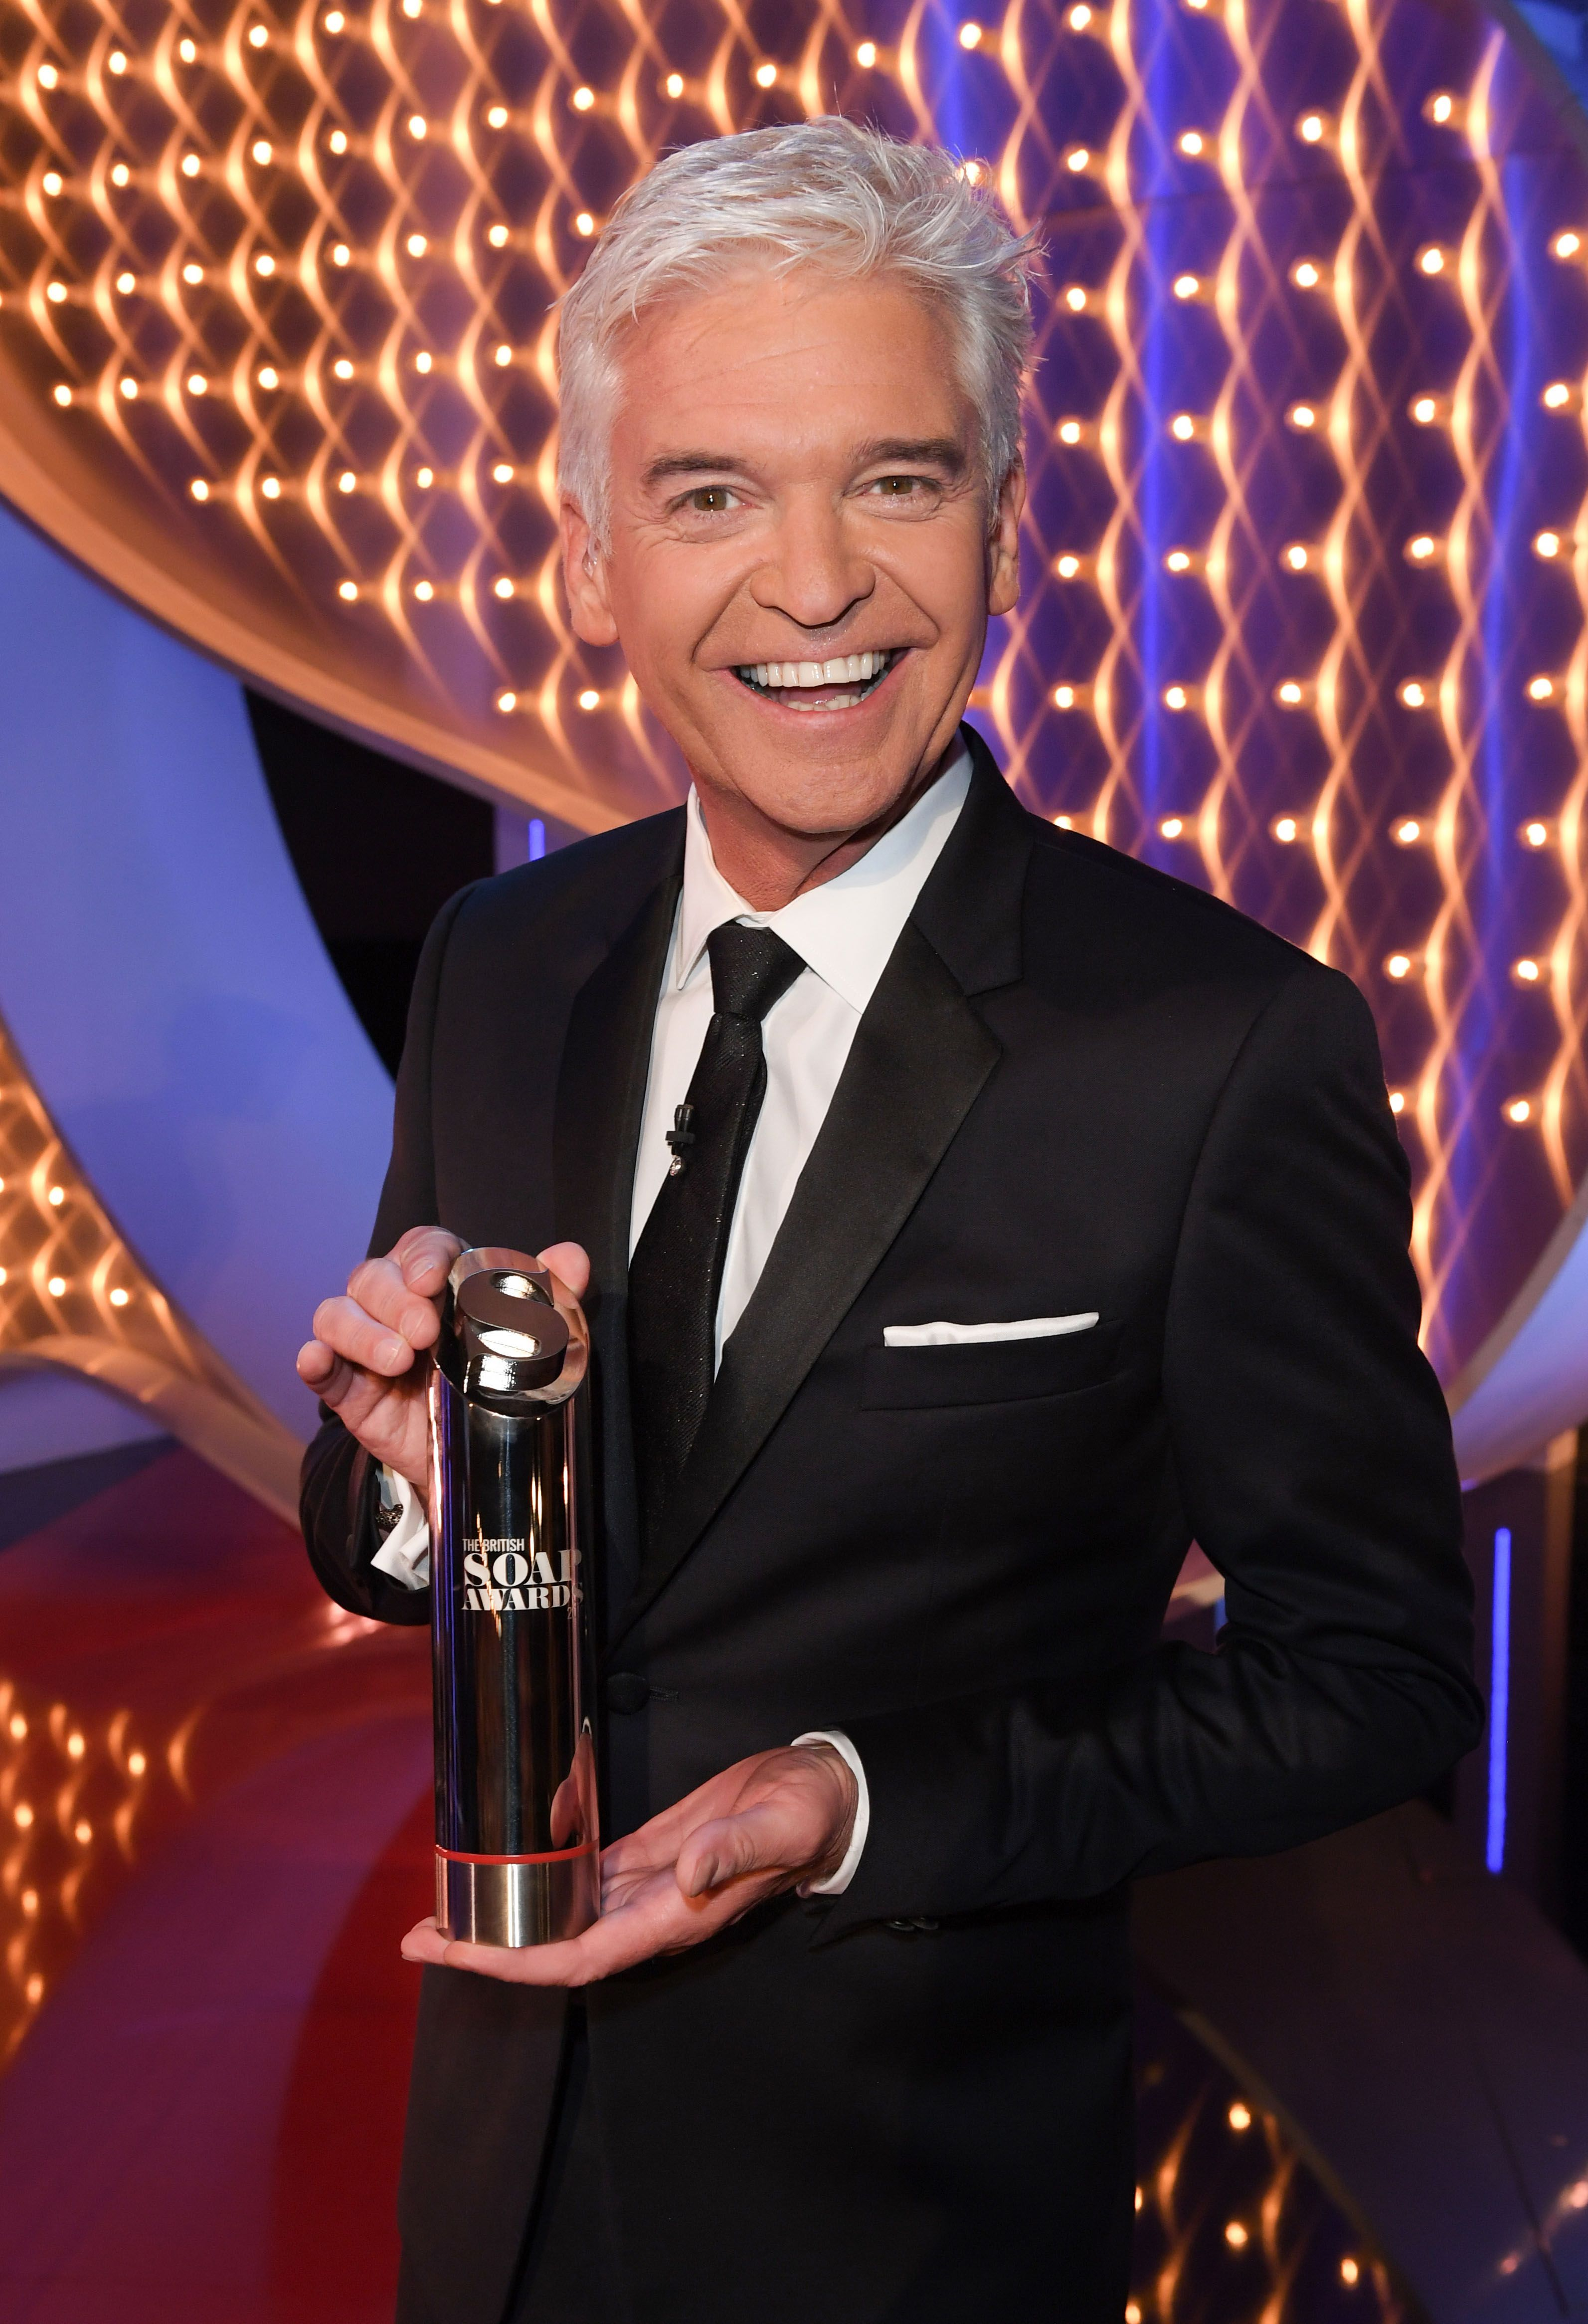 Here are the British Soap Awards 2019 winners